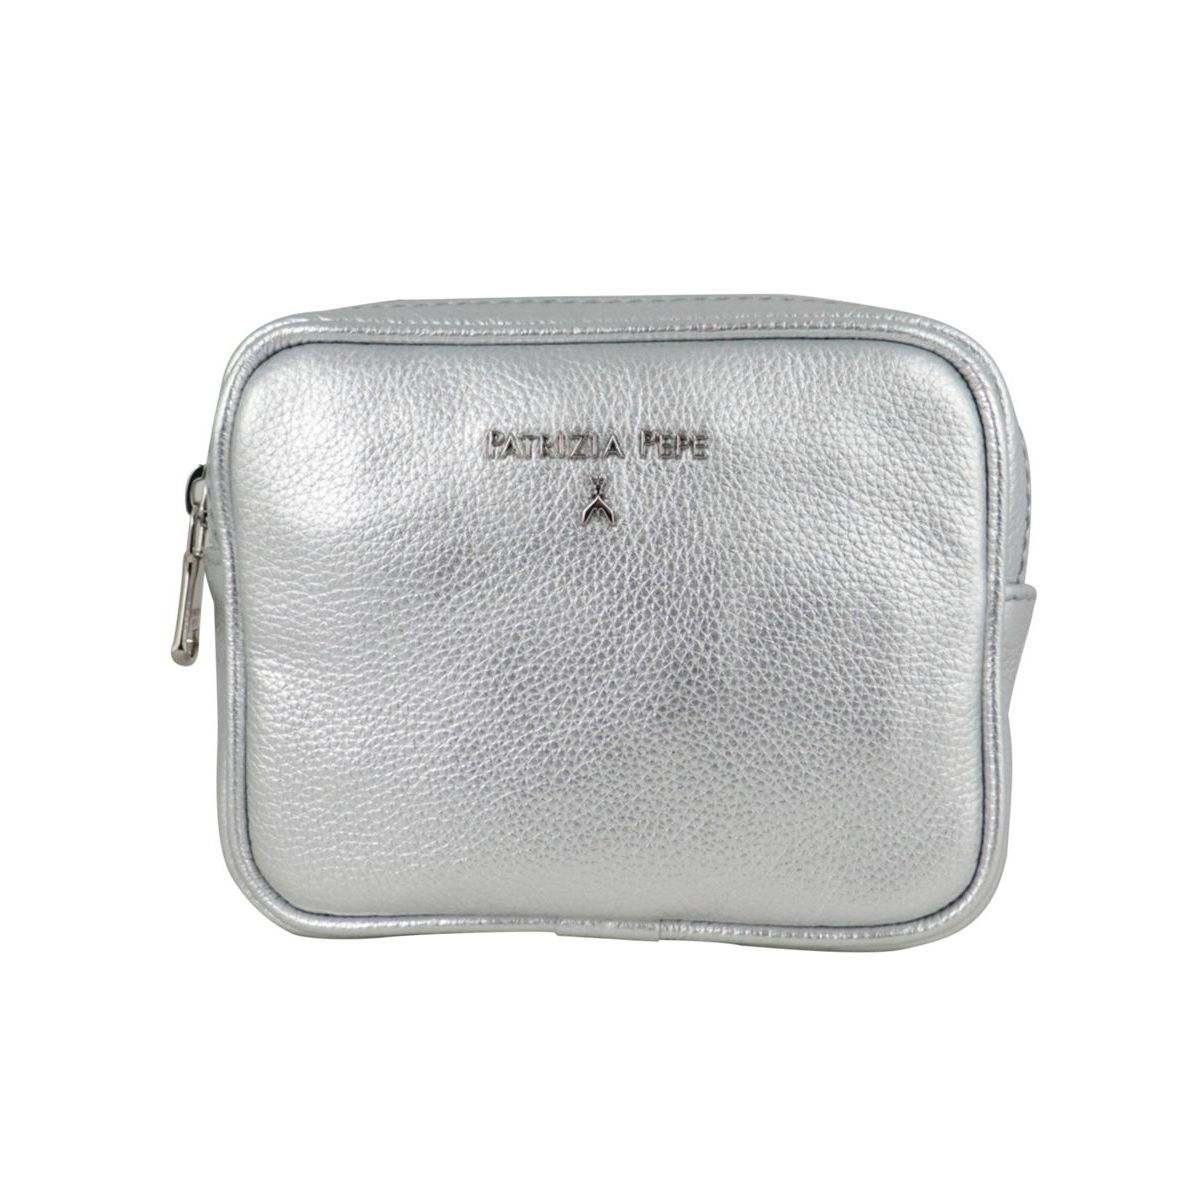 Beauty in textured leather Silver Patrizia Pepe